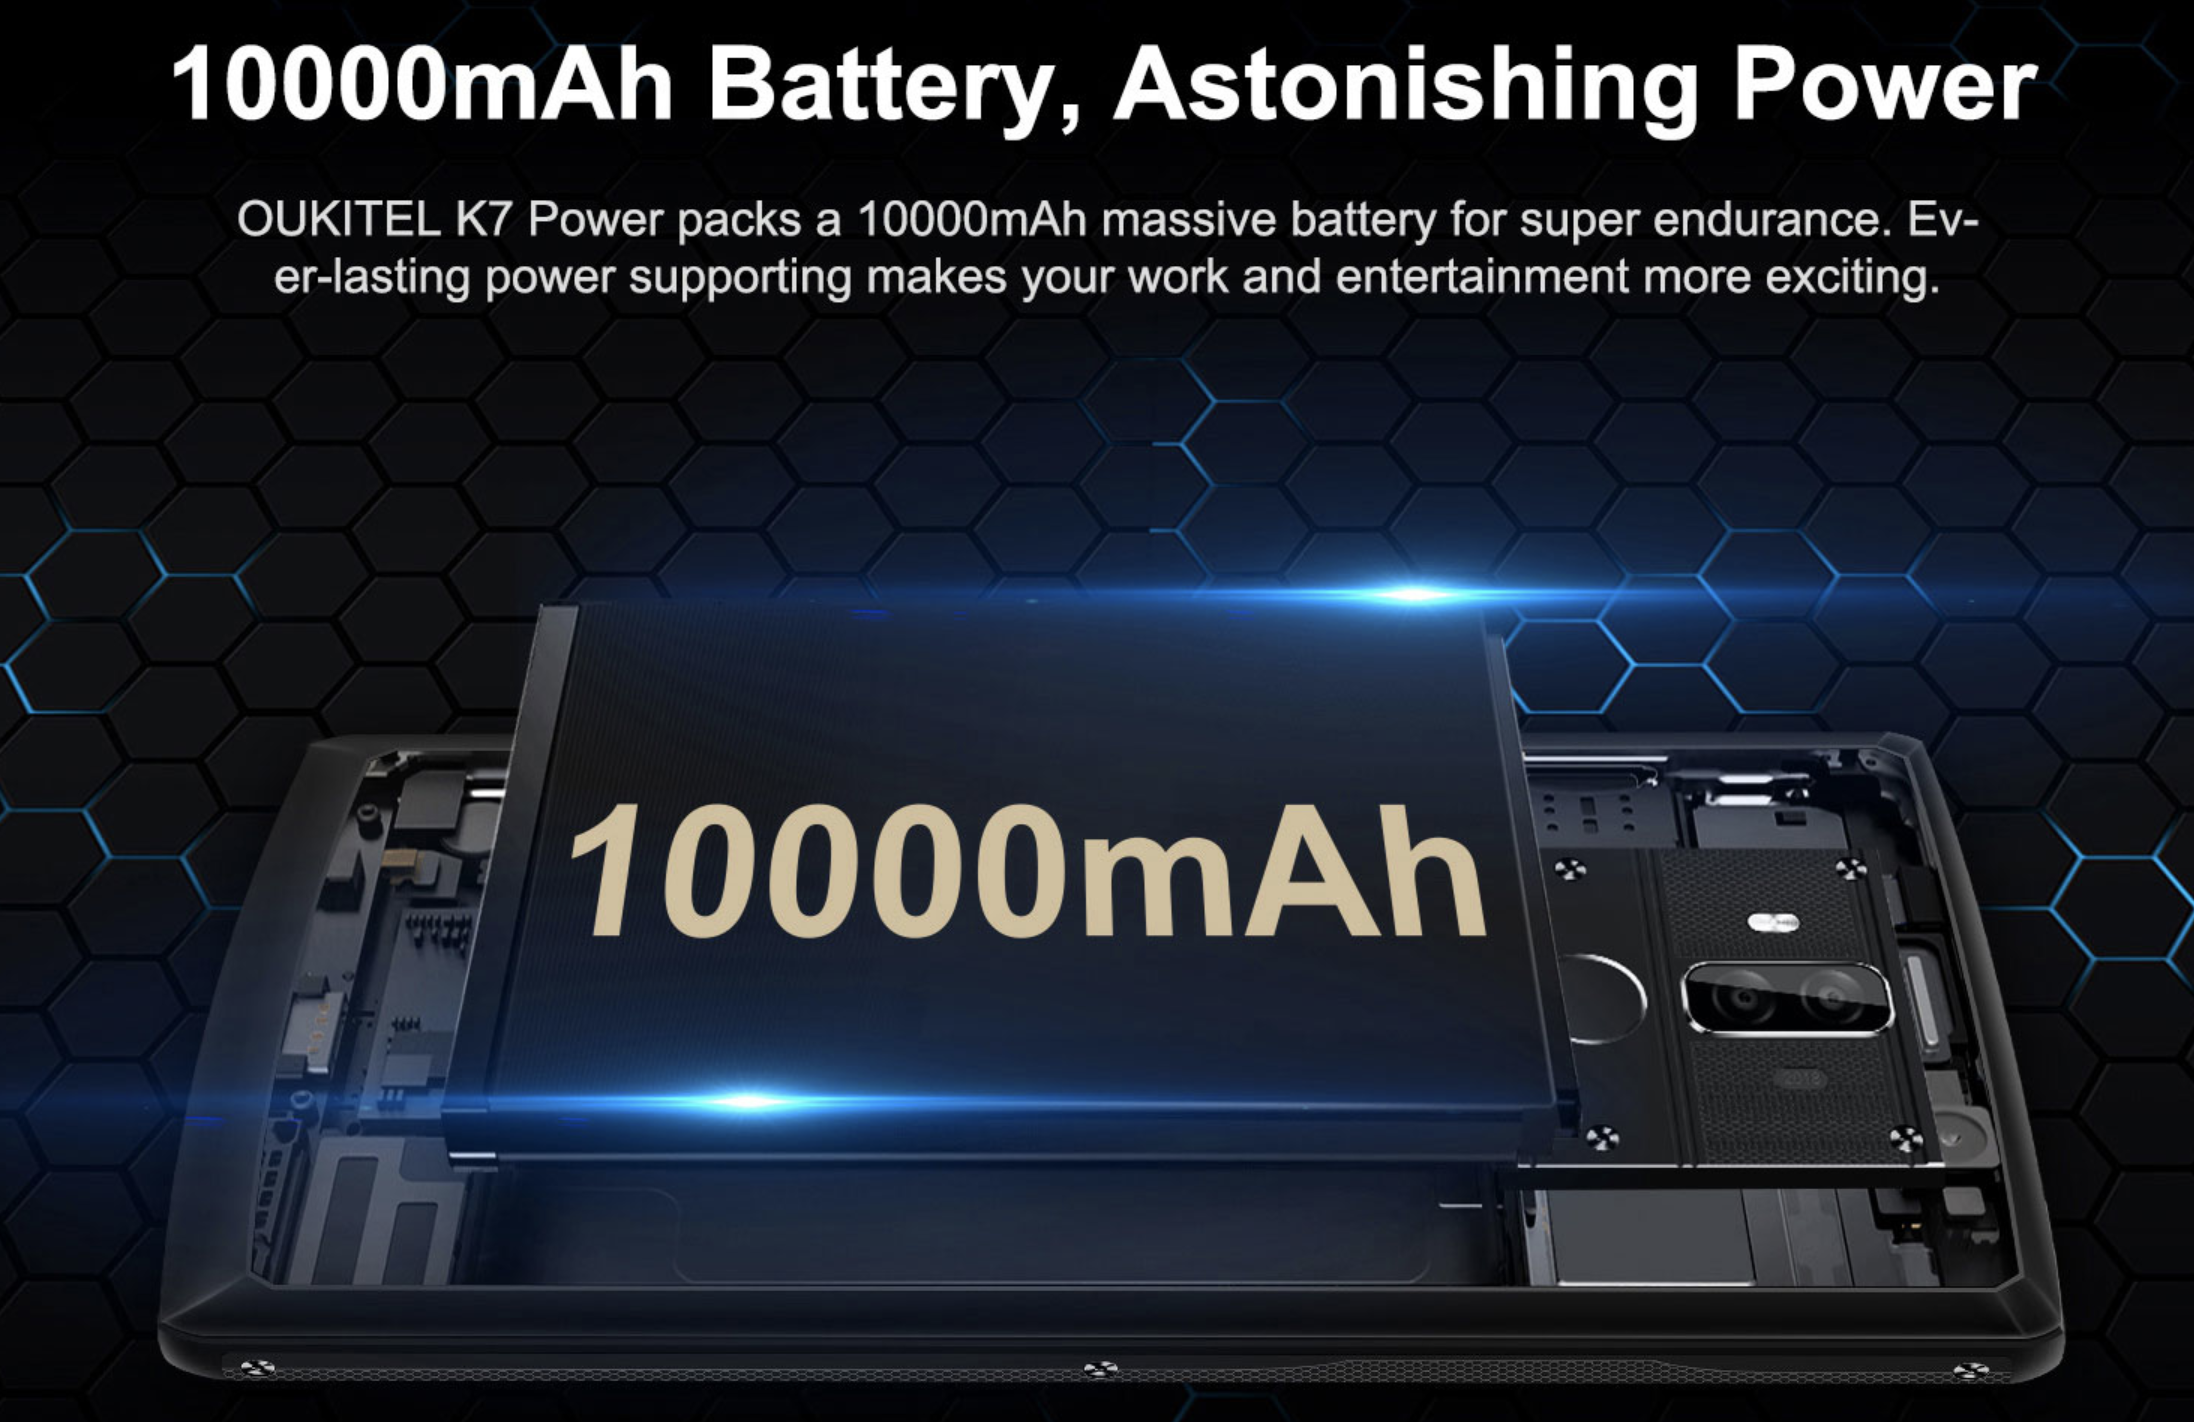 OUKITEL K7 Power battery